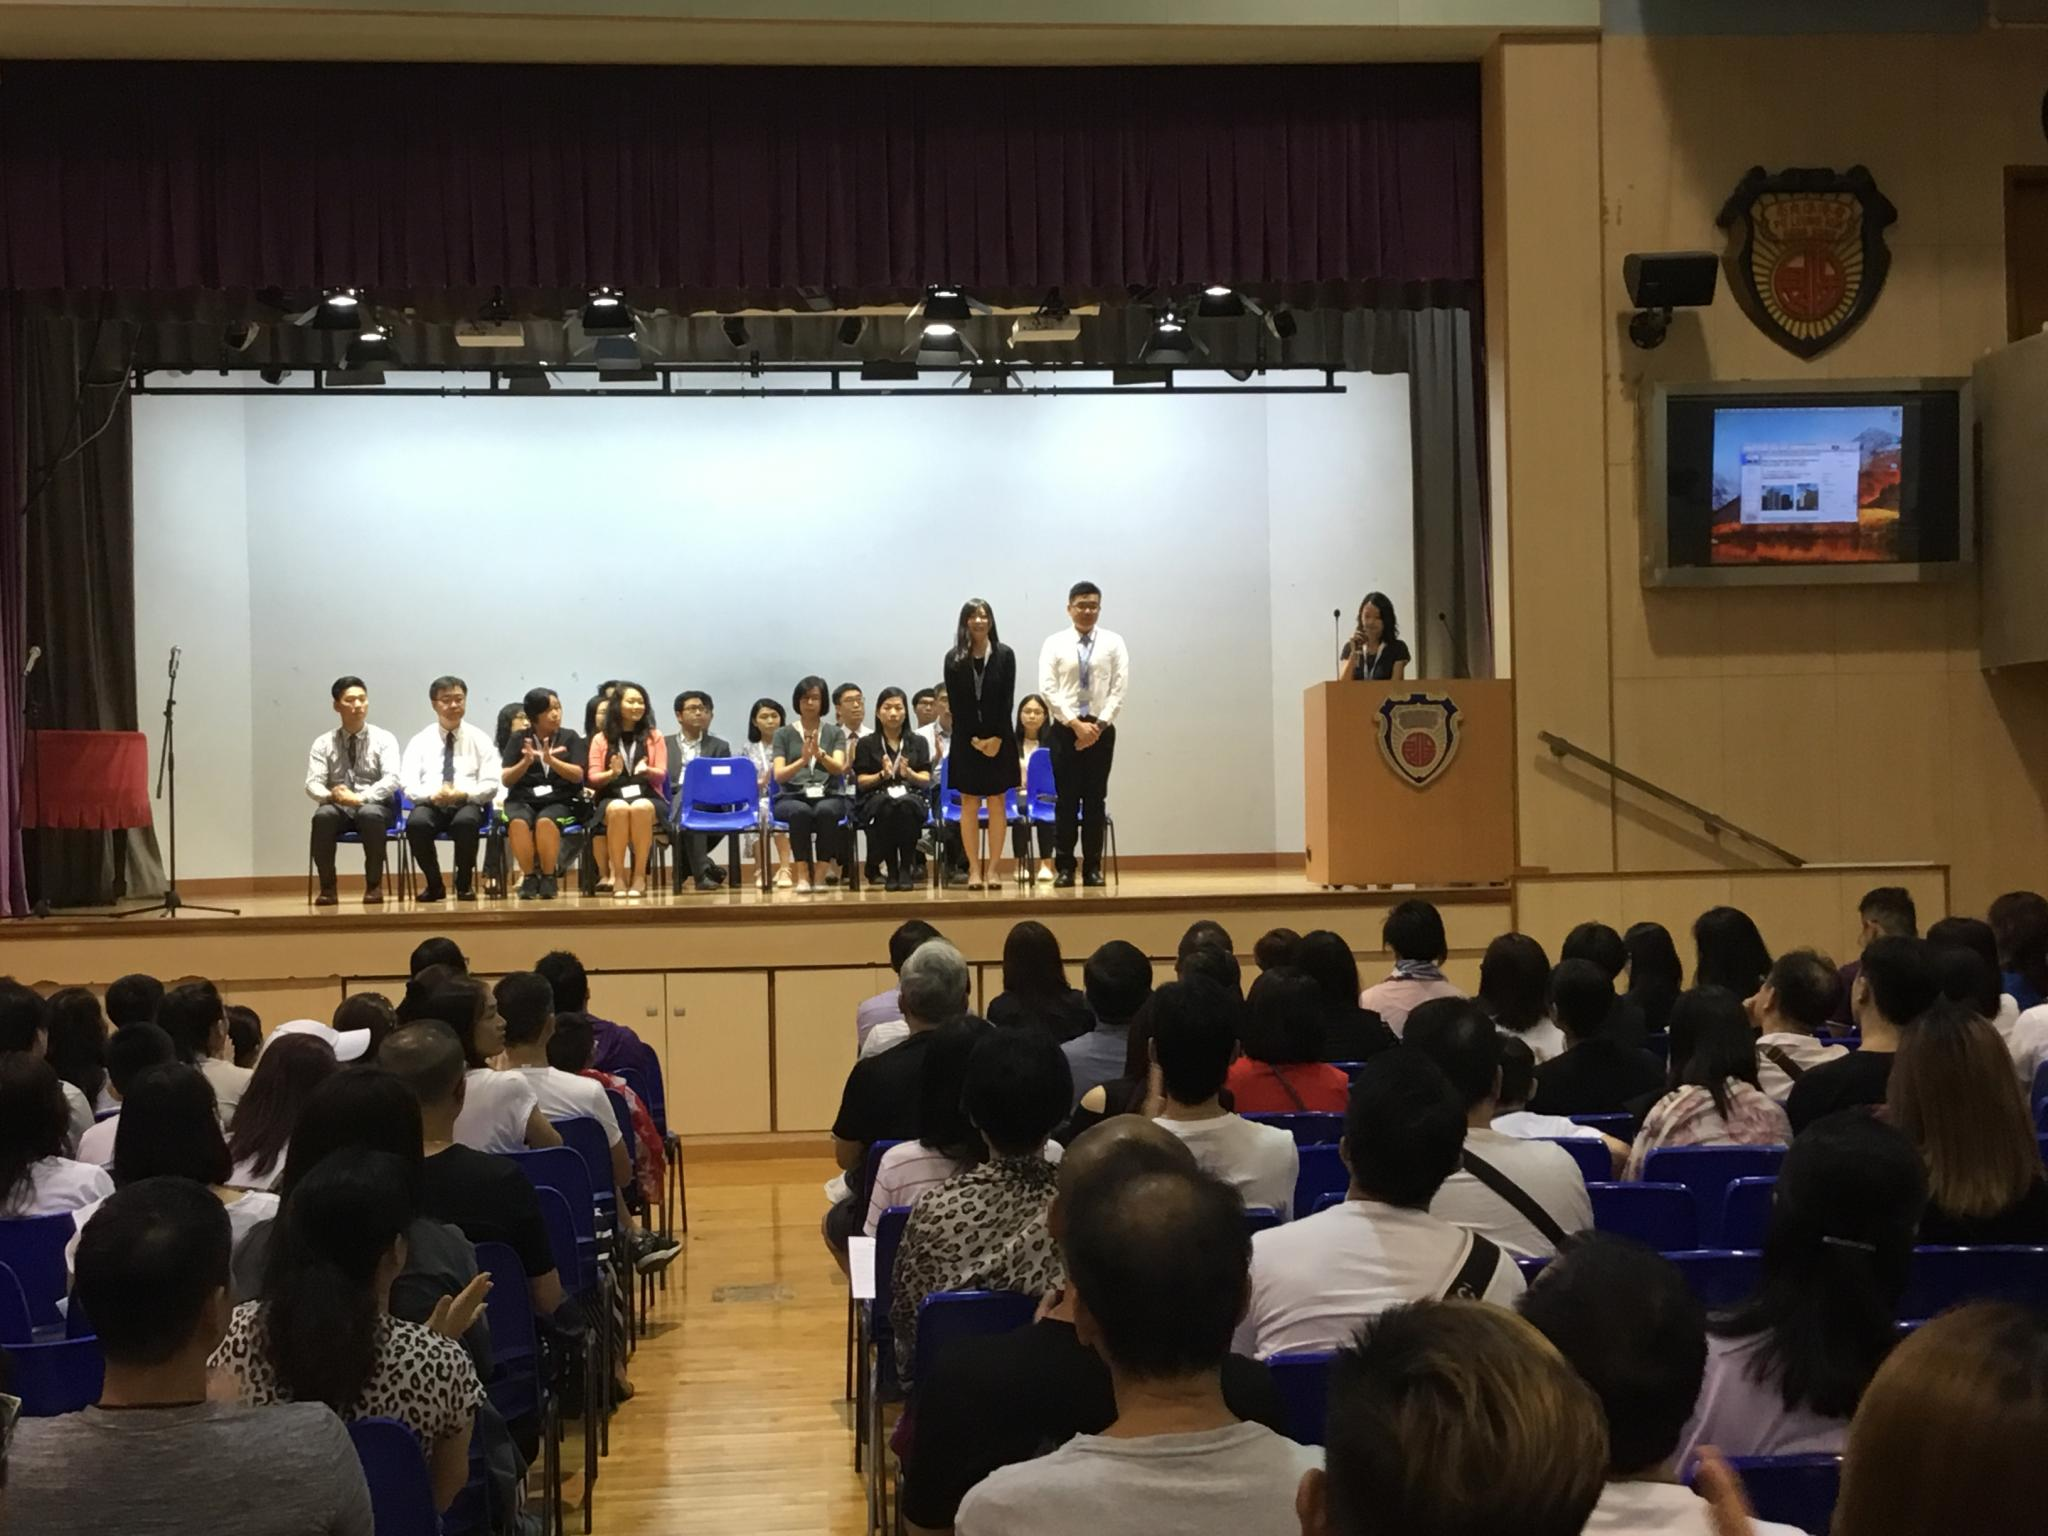 Our Vice Principal, Ms. Siu is introducing the staff on the stage.